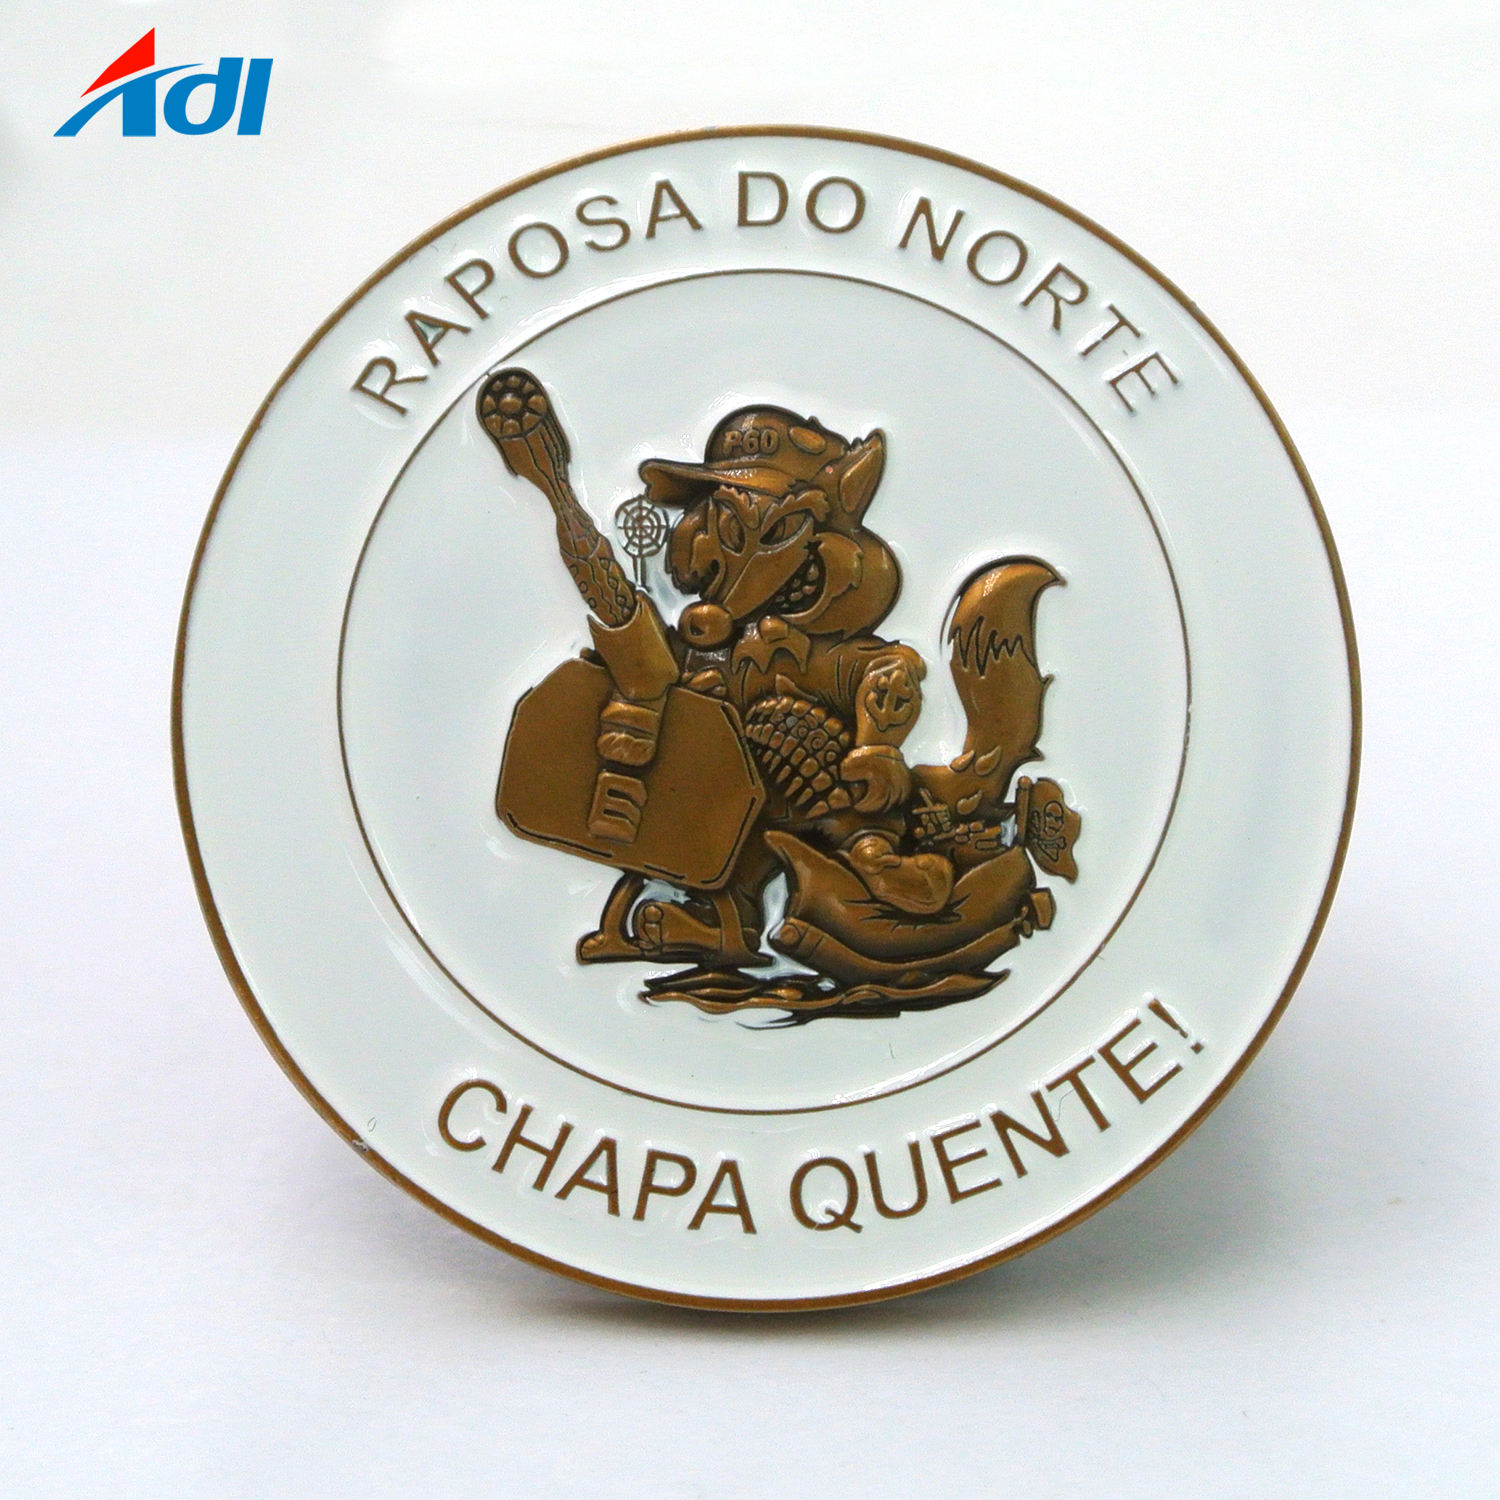 Cheap metal enamel challenge commemorative coins with custom logo